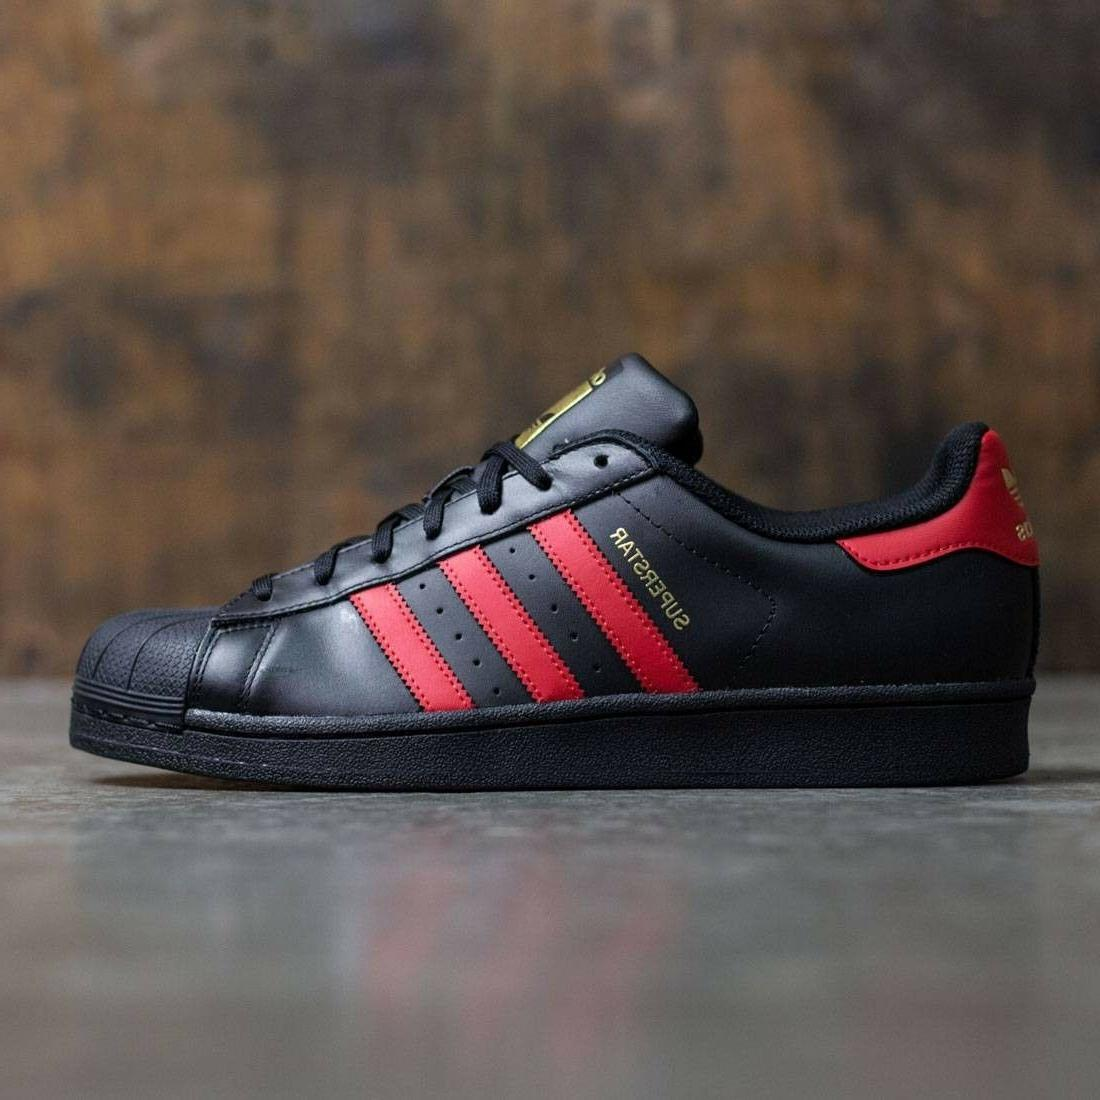 NEW MENS ADIDAS SUPERSTAR SNEAKERS S80694-SHOES-SIZE 9.5